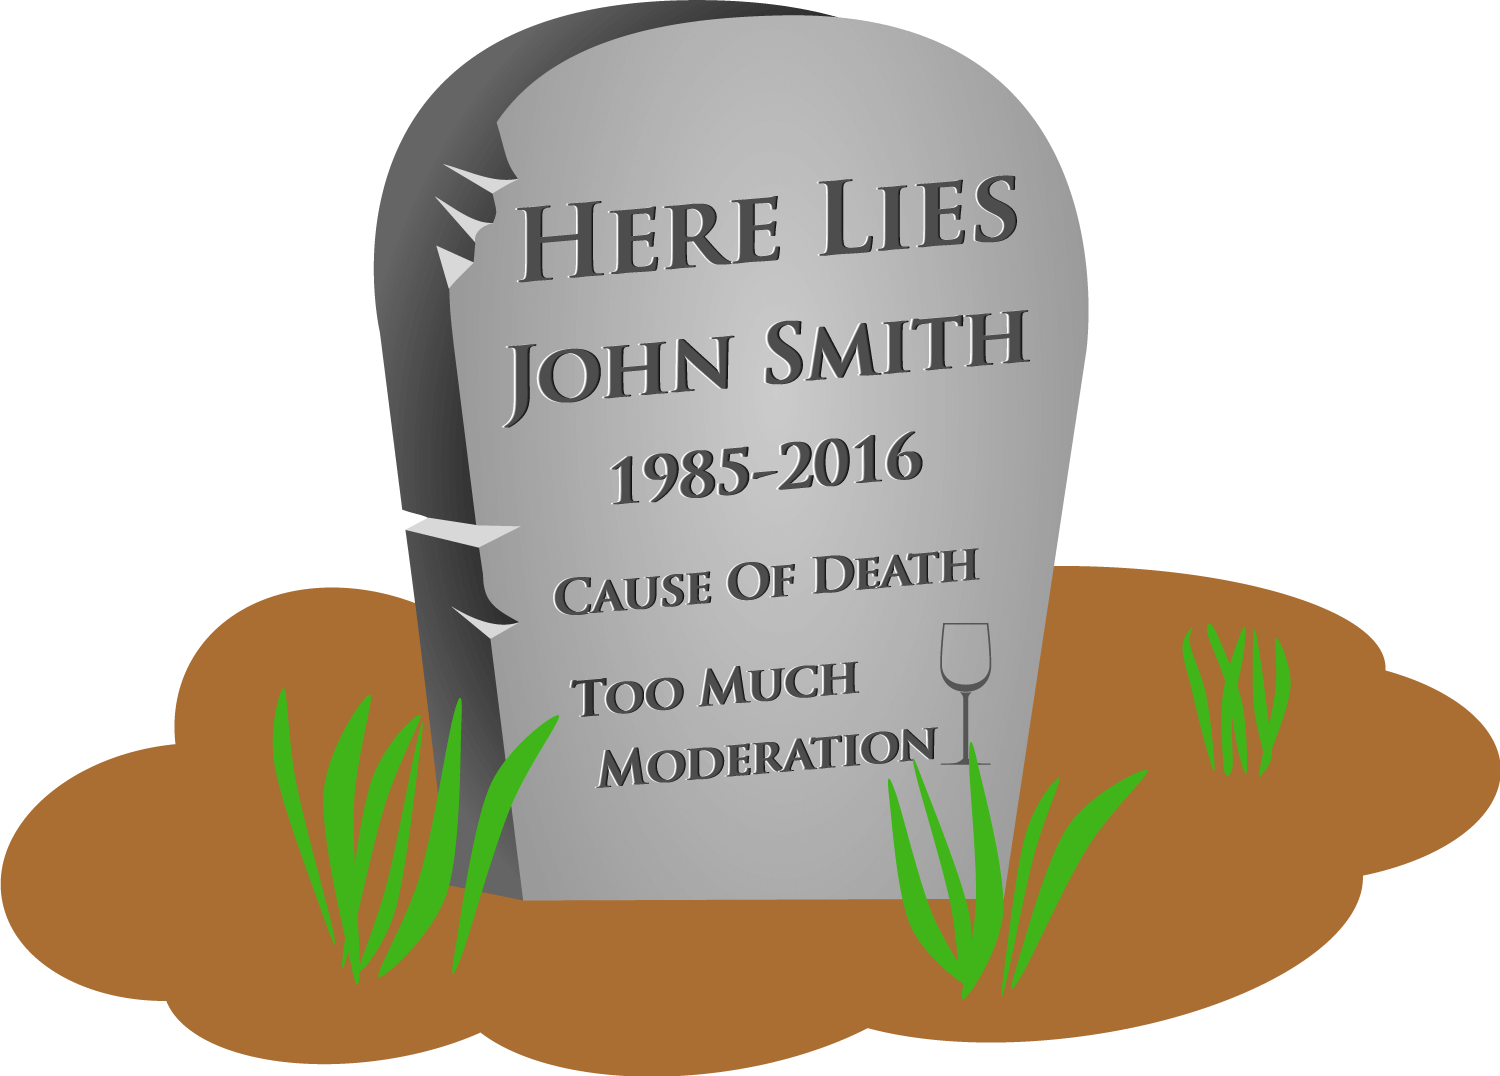 Image showing a headstone with the words